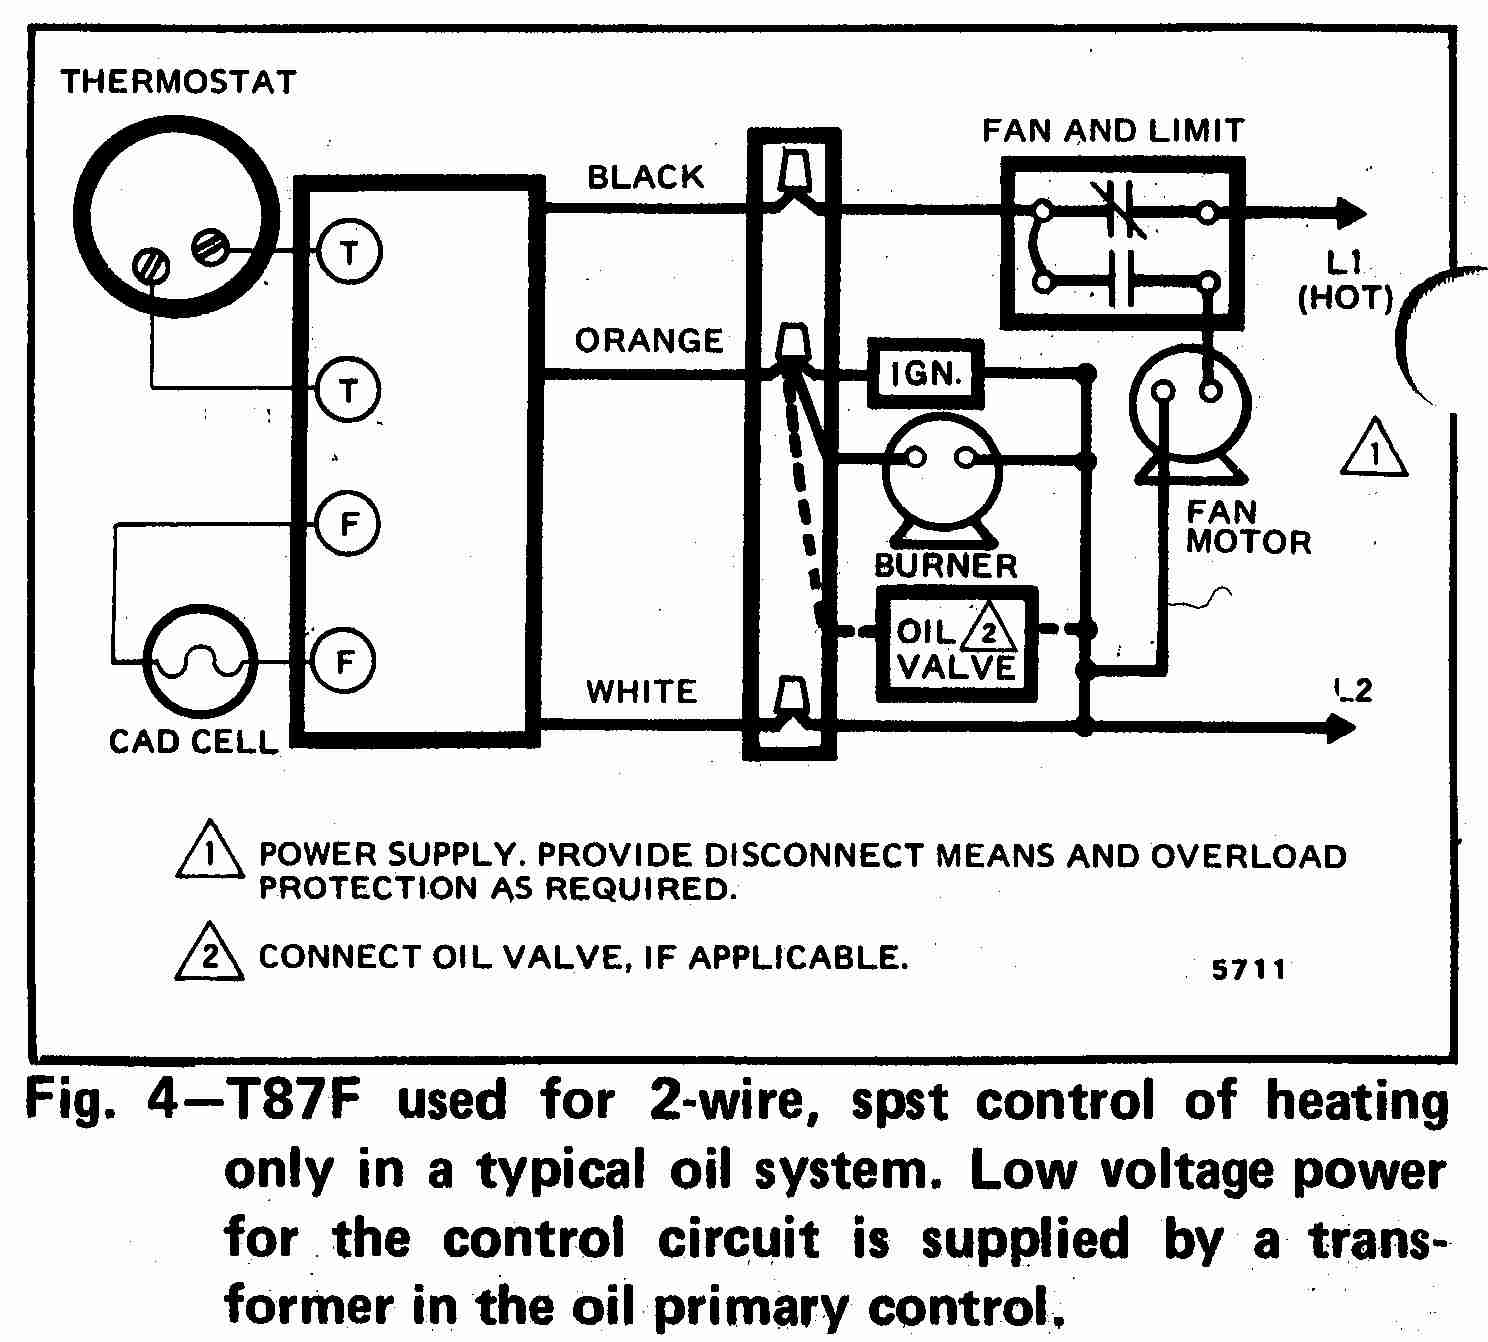 One Circuit Wiring Diagram Two Rooms Library A Gfci Schematic Daisy Chain Room Thermostat Diagrams For Hvac Systems Plumbing Honeywell T87f